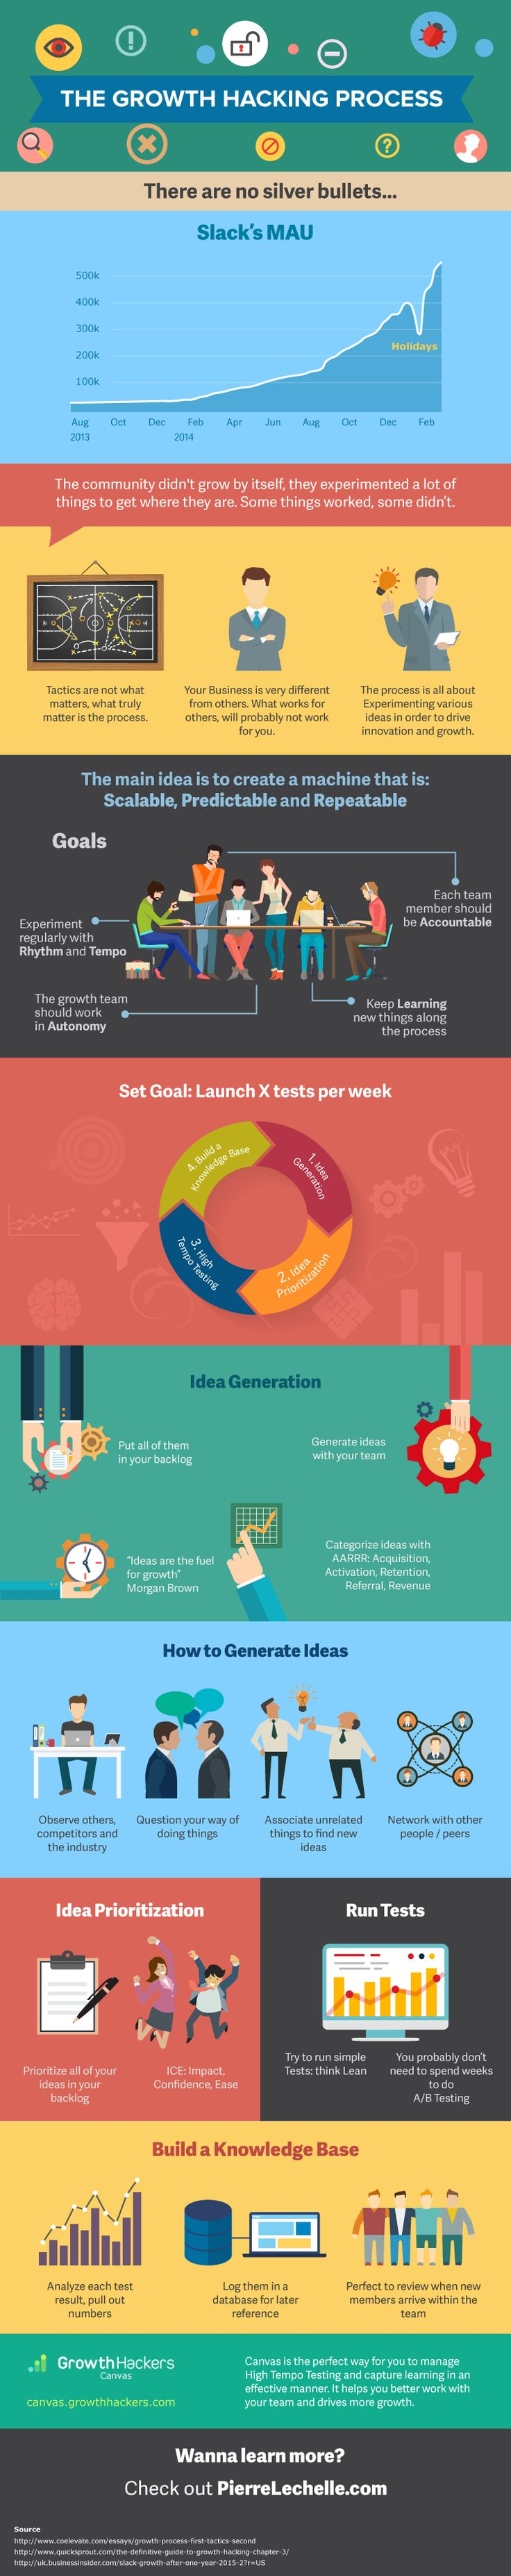 The Growth Hacking Process for Businesses and Startup . #GrowthHacking